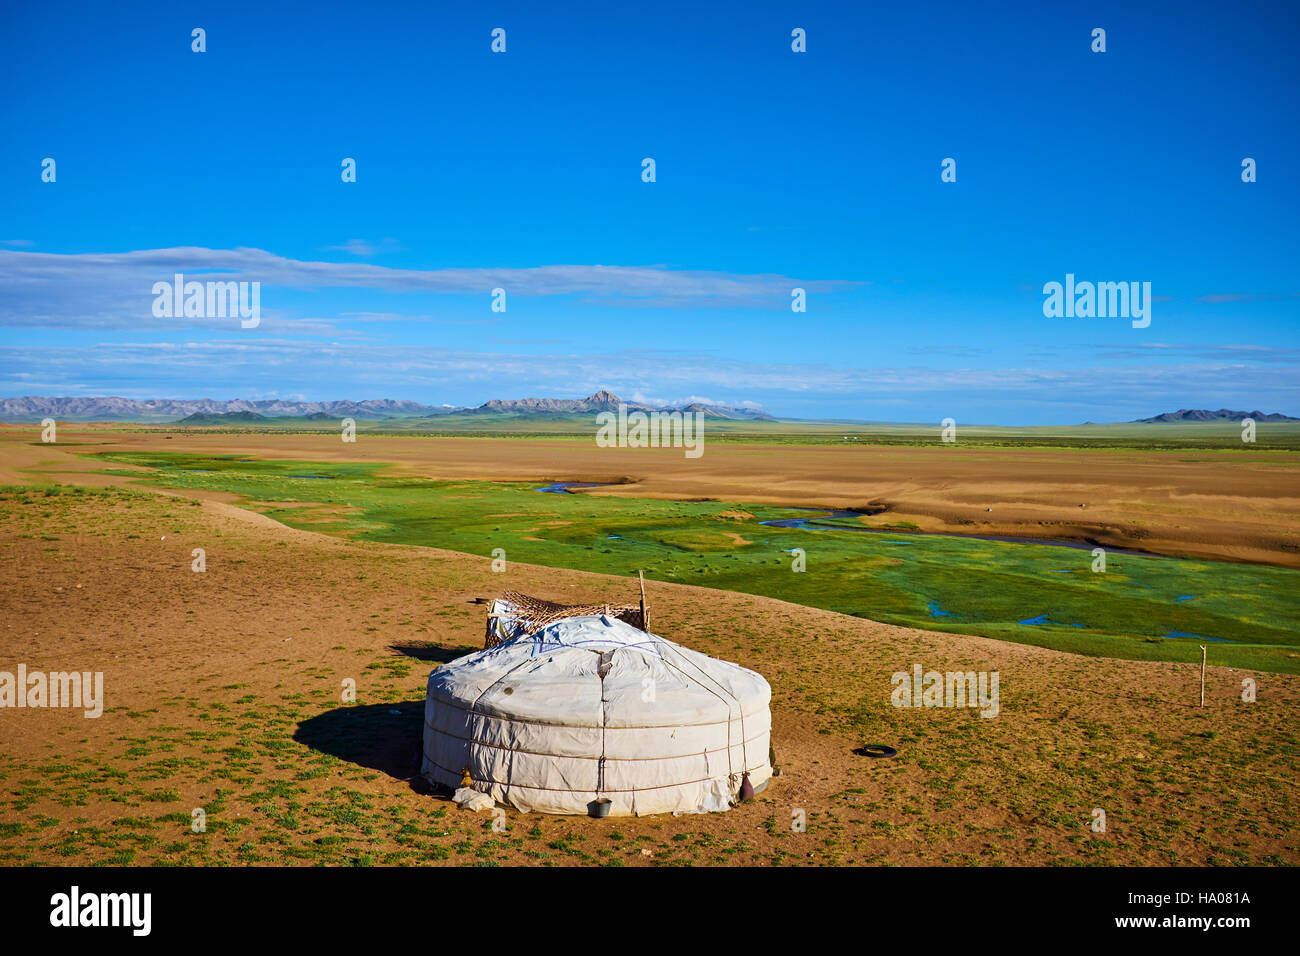 Mongolia, Zavkhan province, nomad camp in the steppe - Stock Image